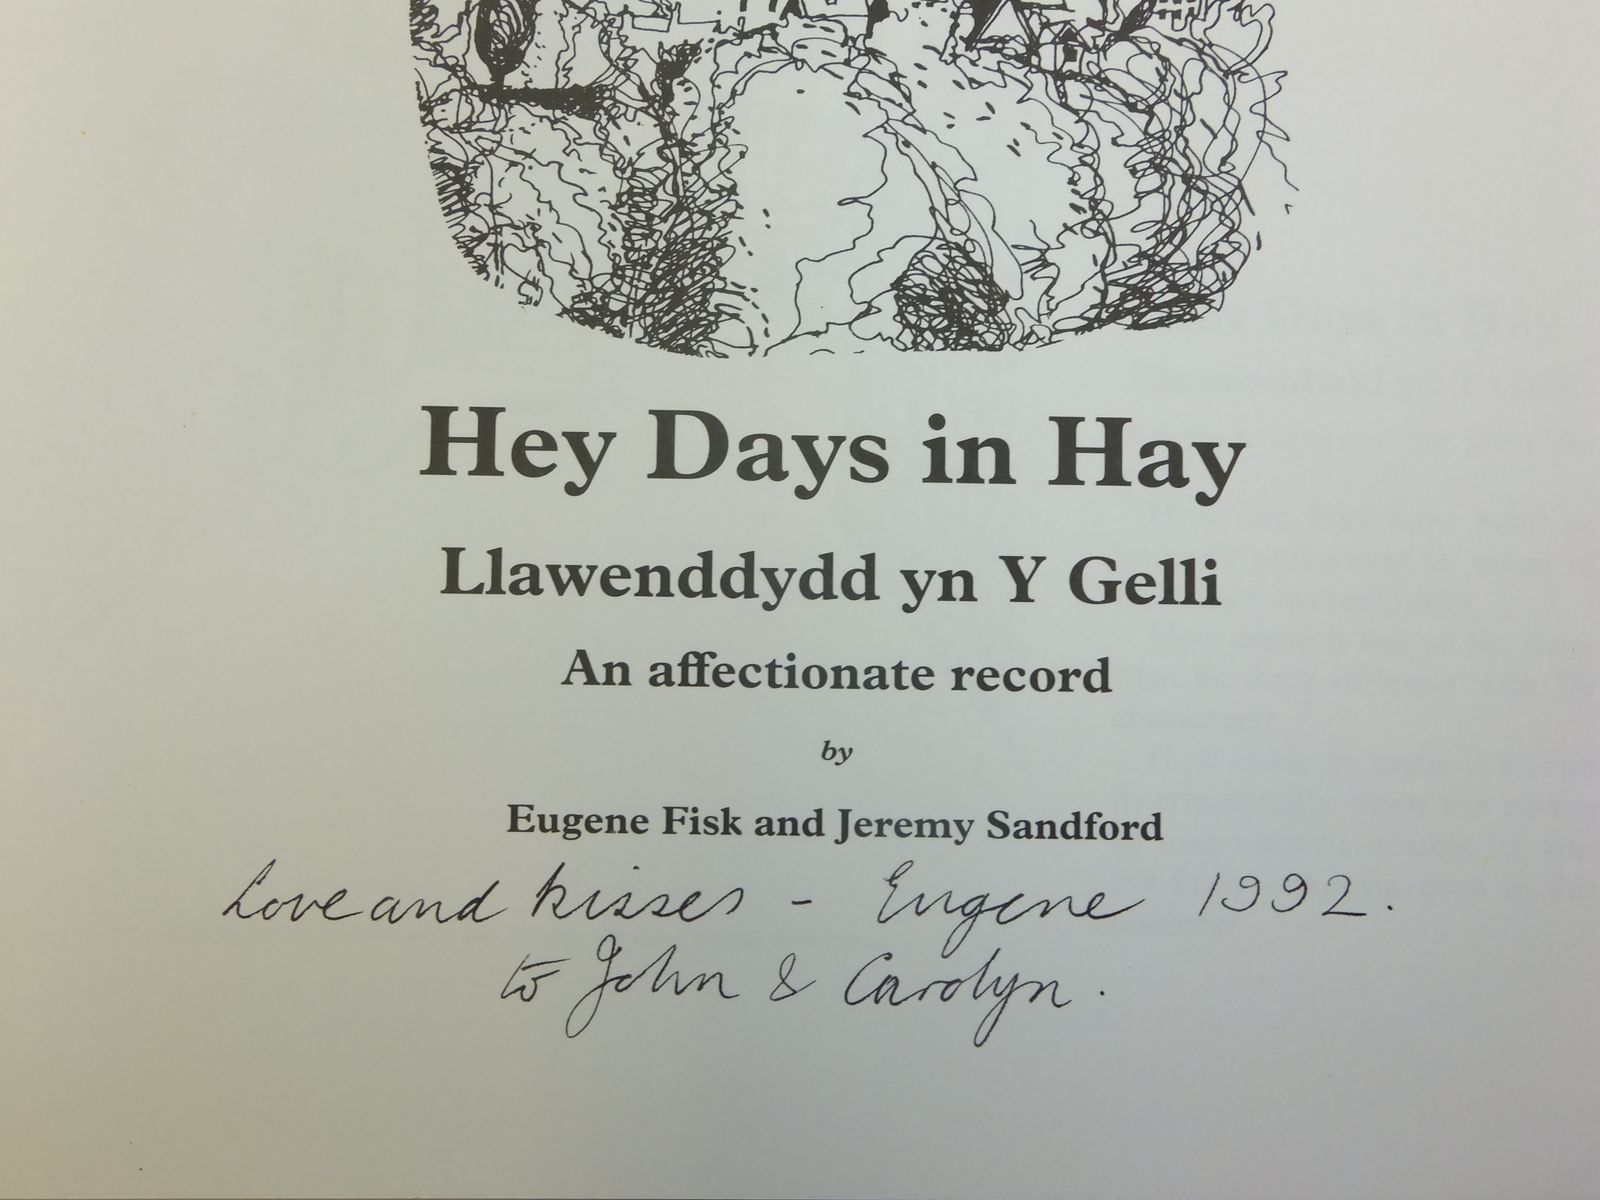 Photo of HEY DAYS IN HAY LLAWENDDYDD YN Y GELLI written by Fisk, Eugene Sandford, Jeremy illustrated by Fisk, Eugene published by The Fitzponce Press (STOCK CODE: 2116546)  for sale by Stella & Rose's Books